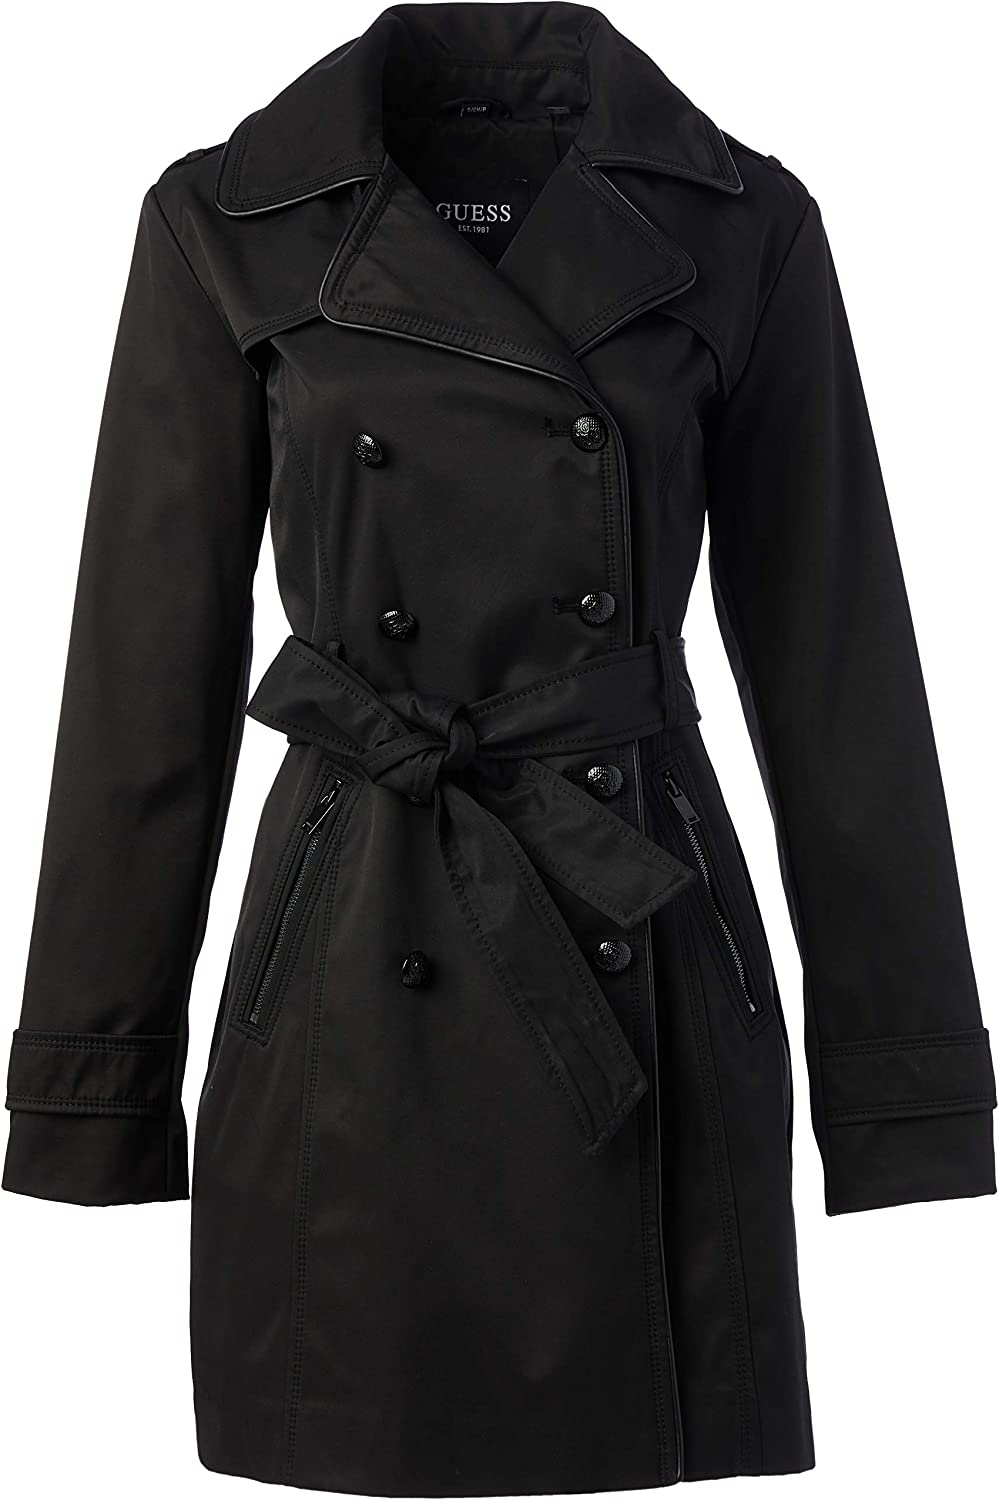 GUESS Womens Ladies Double Breasted Trenchcoat